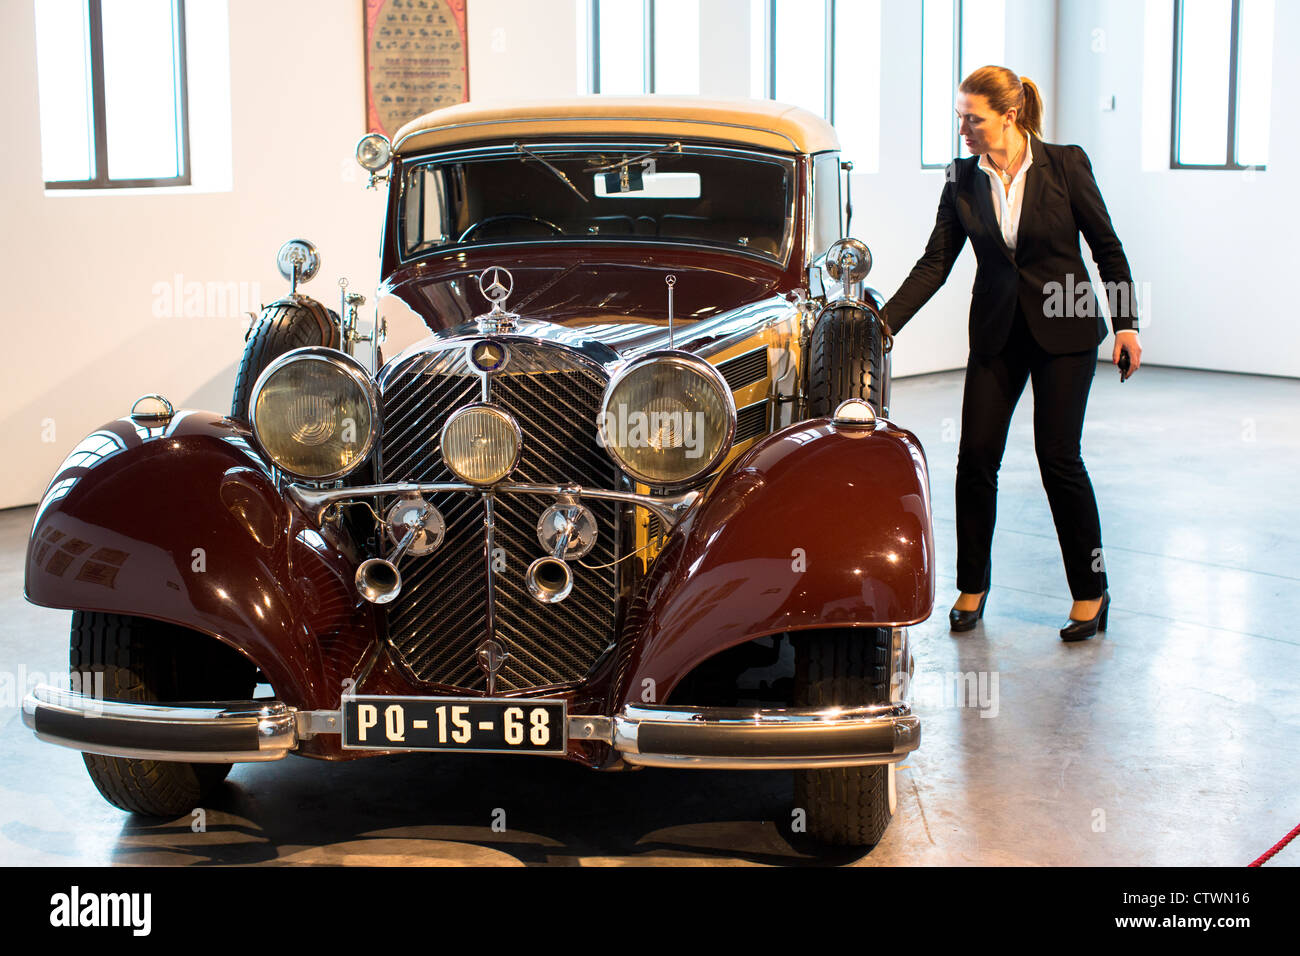 Automobile Museum Malaga Spain Stock Photo Royalty Free Image  # Muebles Mogar Malaga